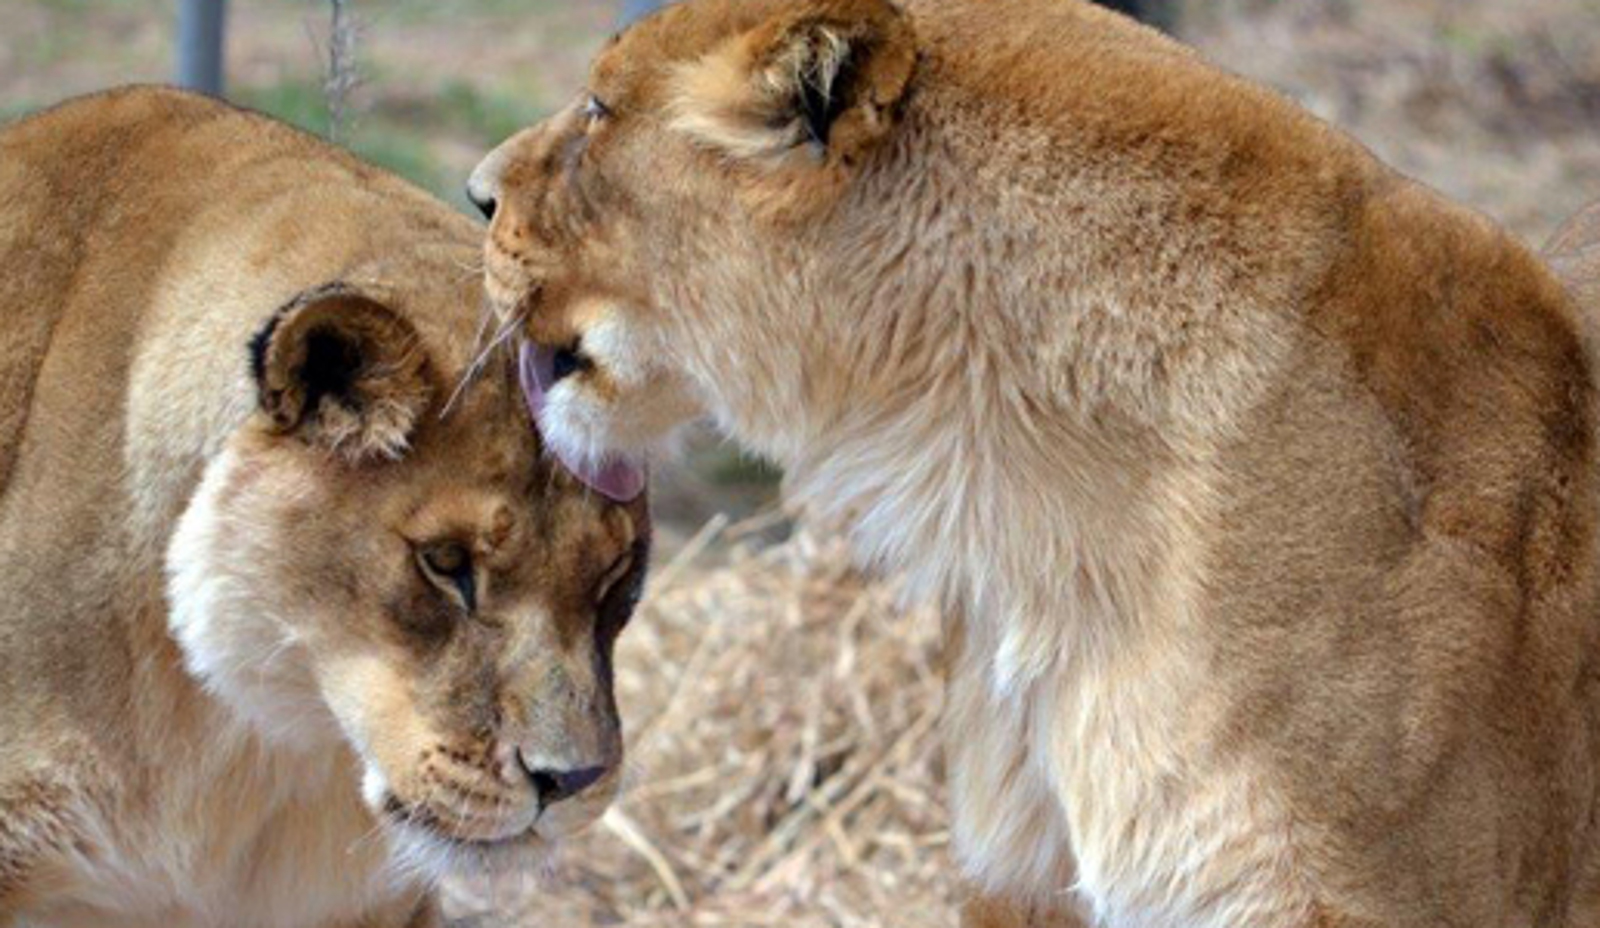 Rescued From a Game Farm, Asha the Lioness Finds Peace at Her Sanctuary Home